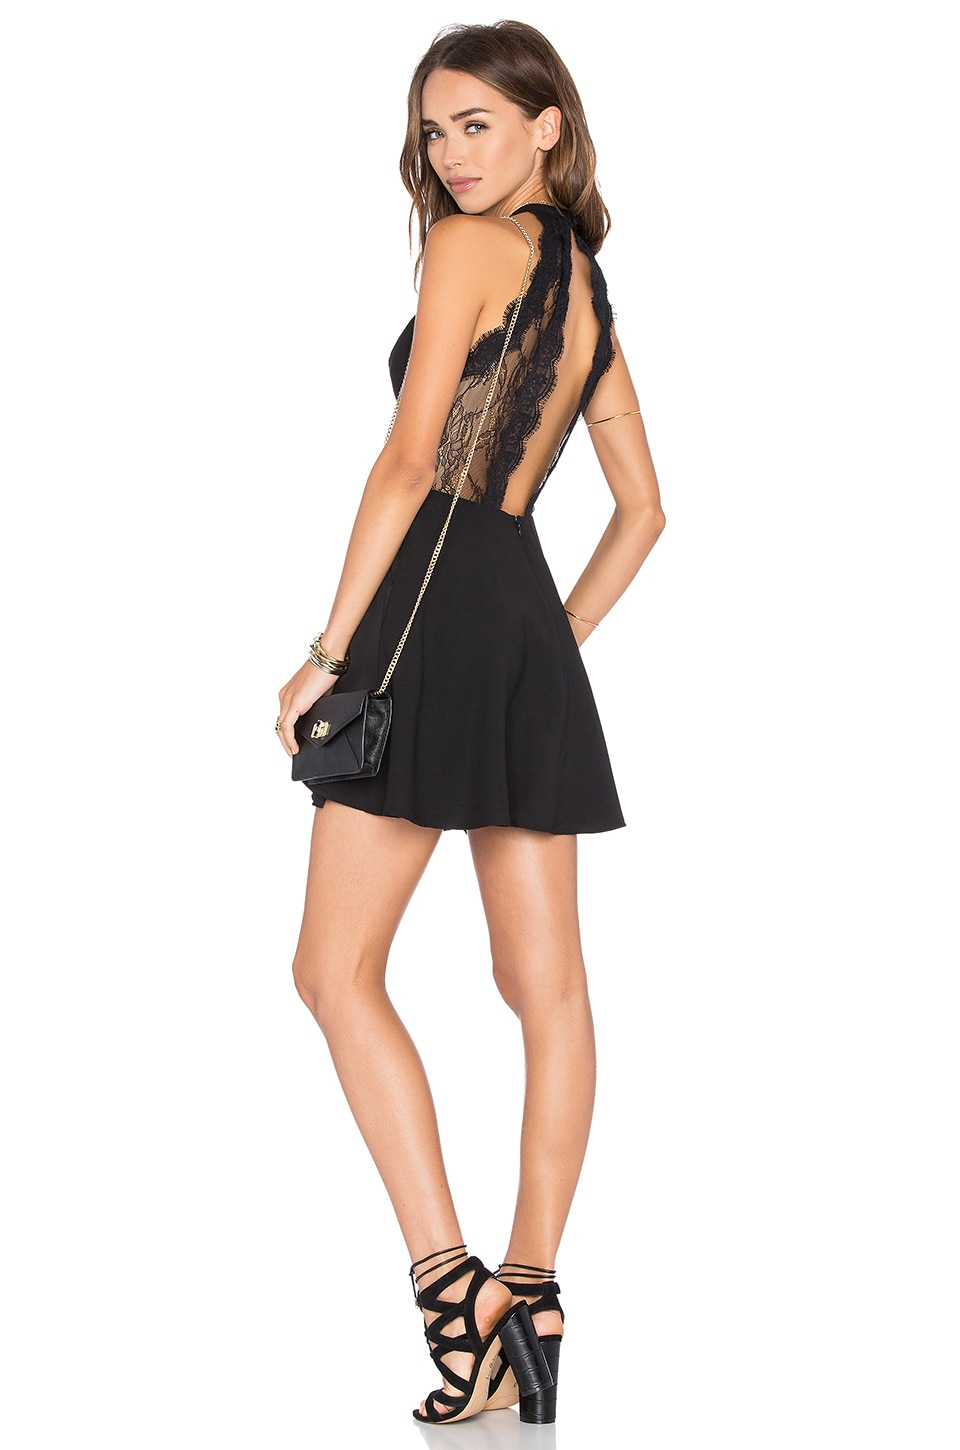 NBD Gimmie More Dress in Black